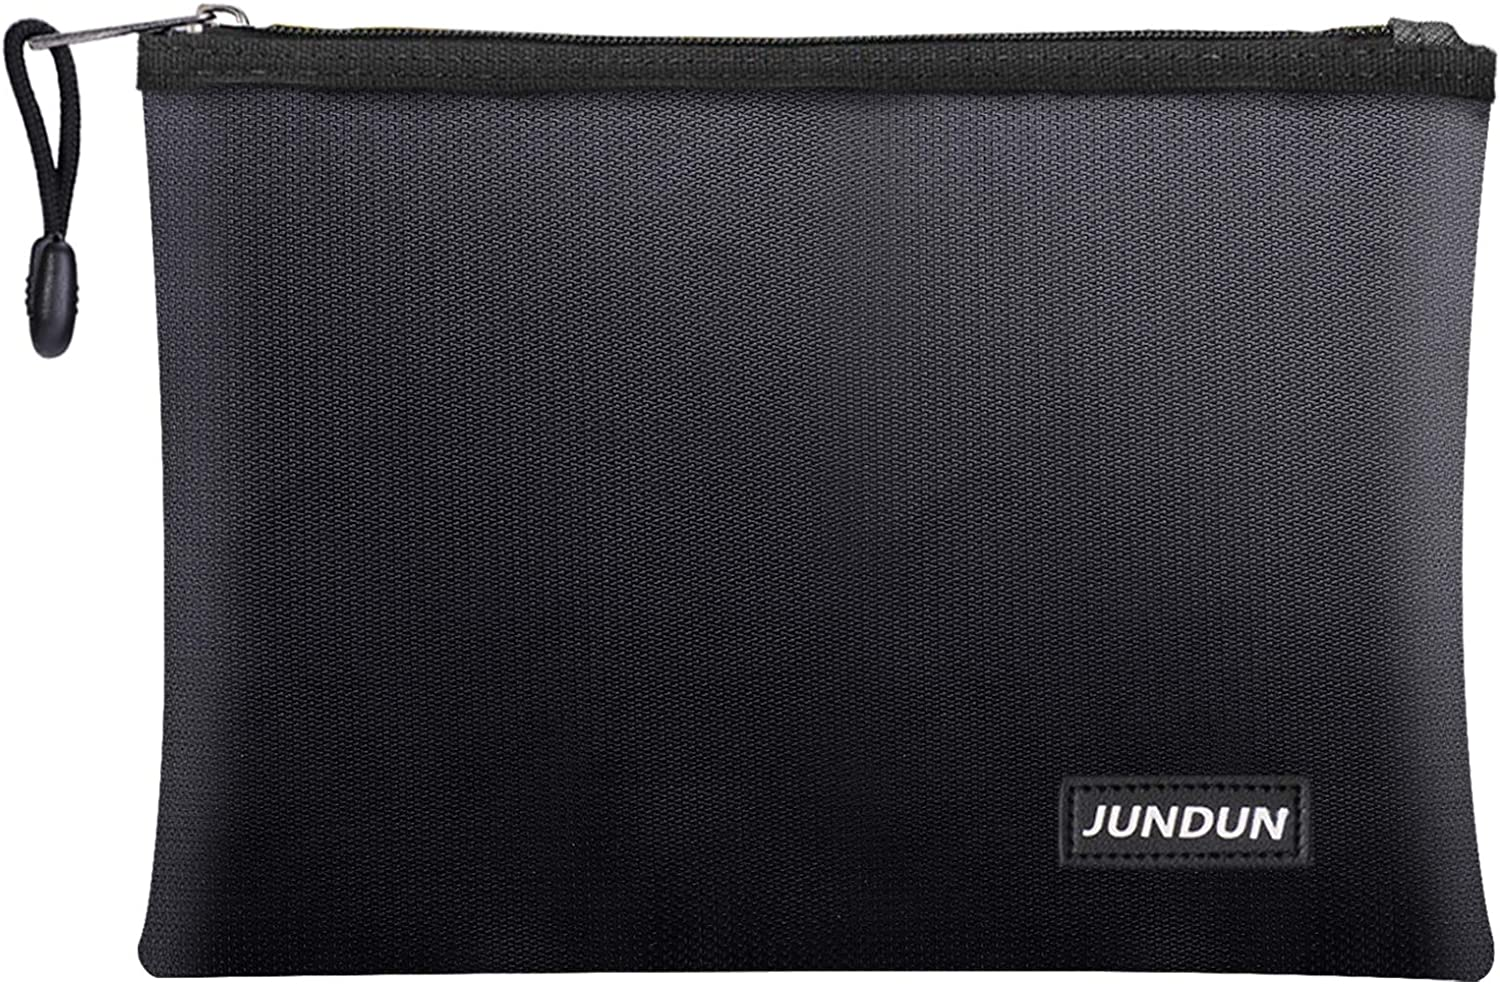 JUNDUN Fireproof Documents Money Bag